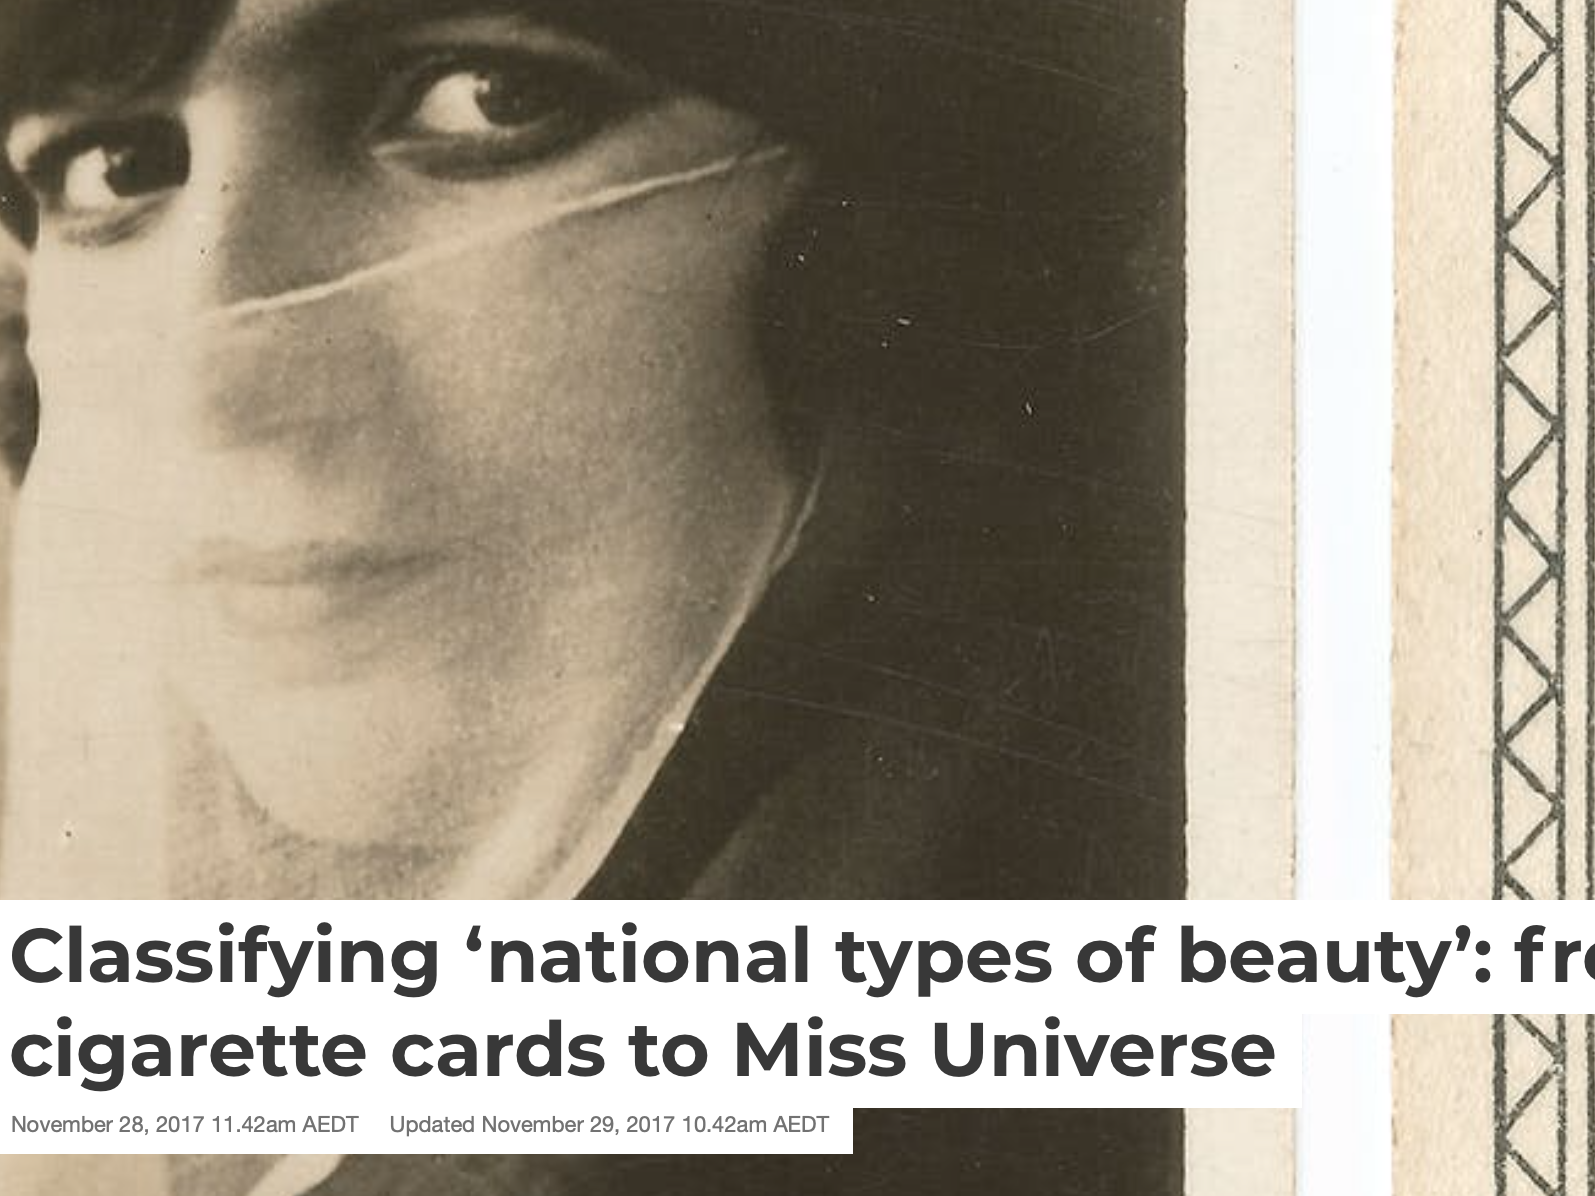 Classifying 'national types of beauty'